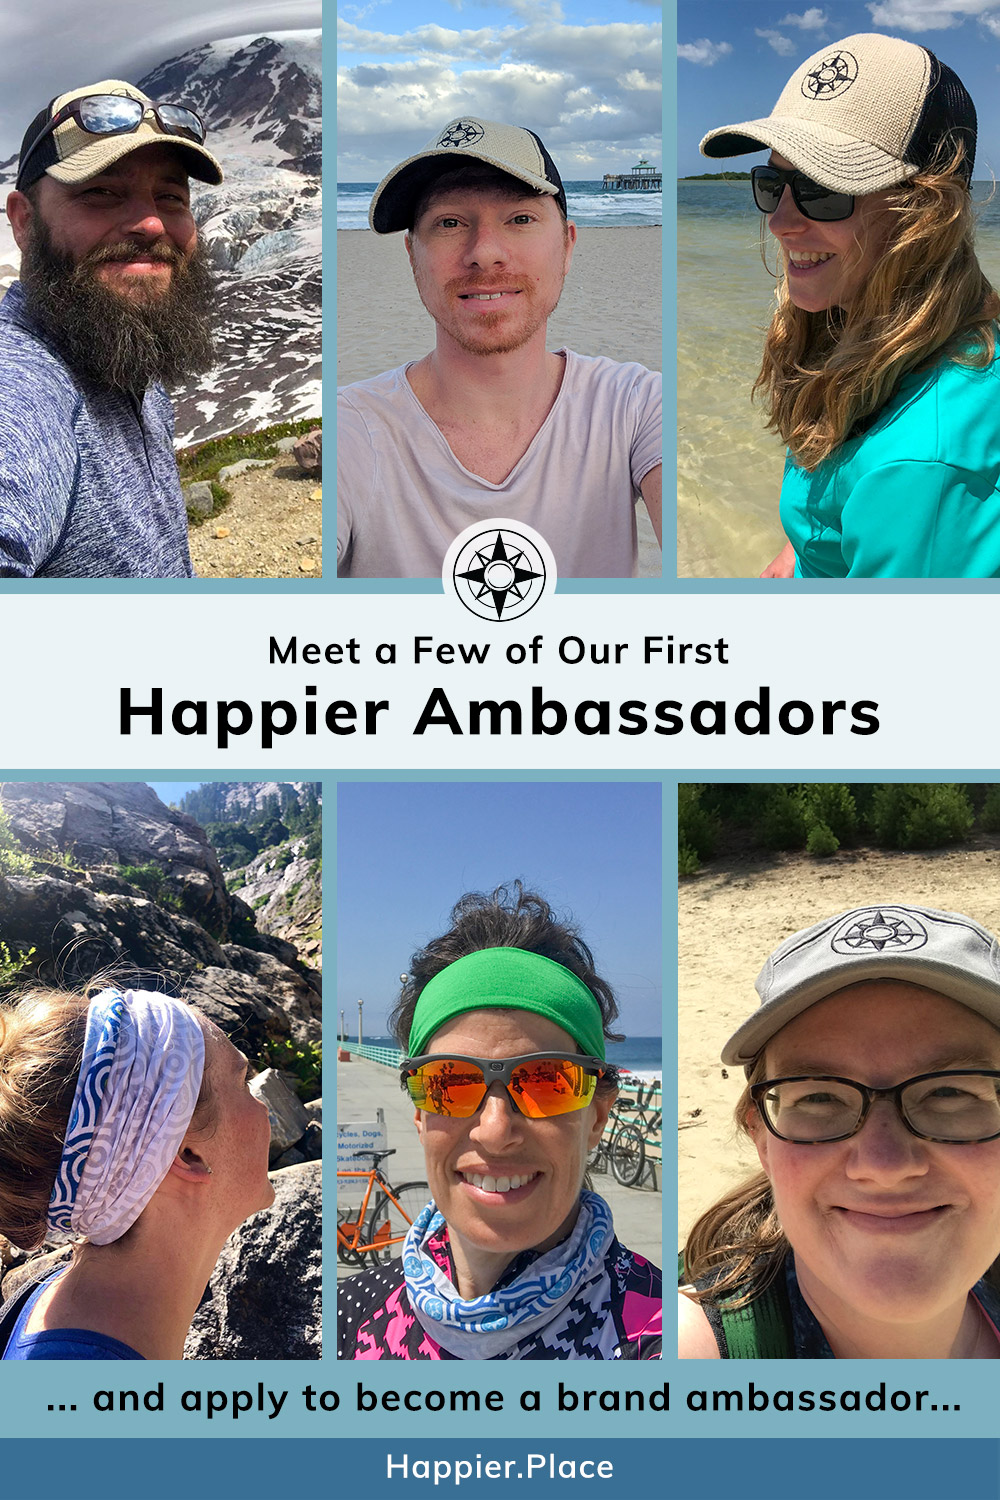 Meet our first Happier Ambassadors: Jake, Adam, Kate, Judith, Lisa, and Danielle... and apply to become a #HappierPlace #BrandAmbassador!